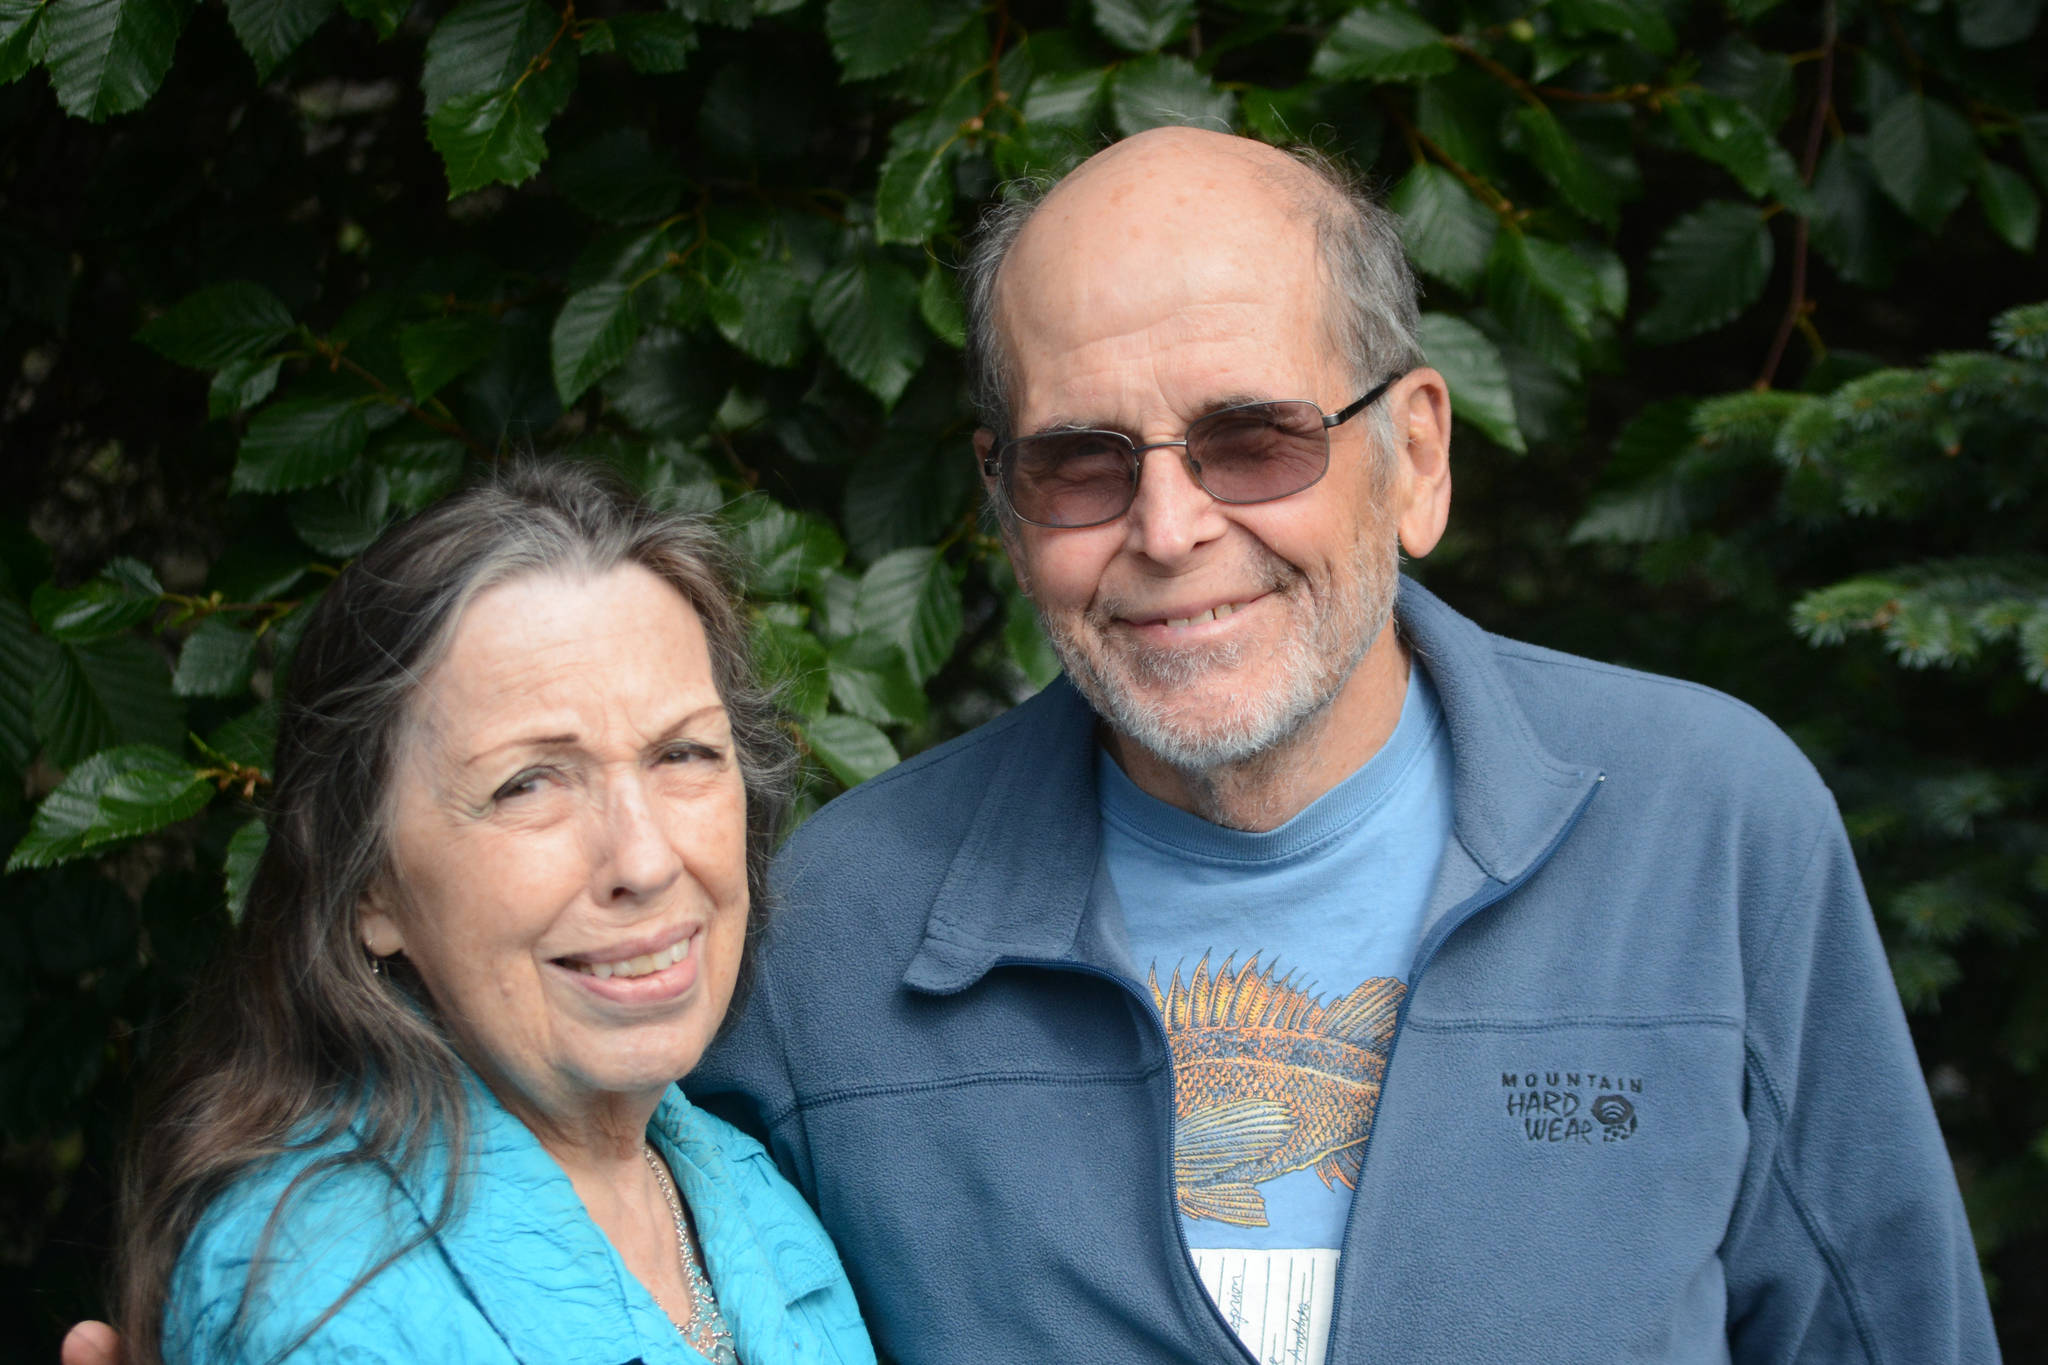 Joan Brown Dodd, left, and Doug Dodd pose for a photo at the Homer News on Tuesday, Aug. 7, 2018, in Homer, Alaska. (Photo by Michael Armstrong/Homer News)